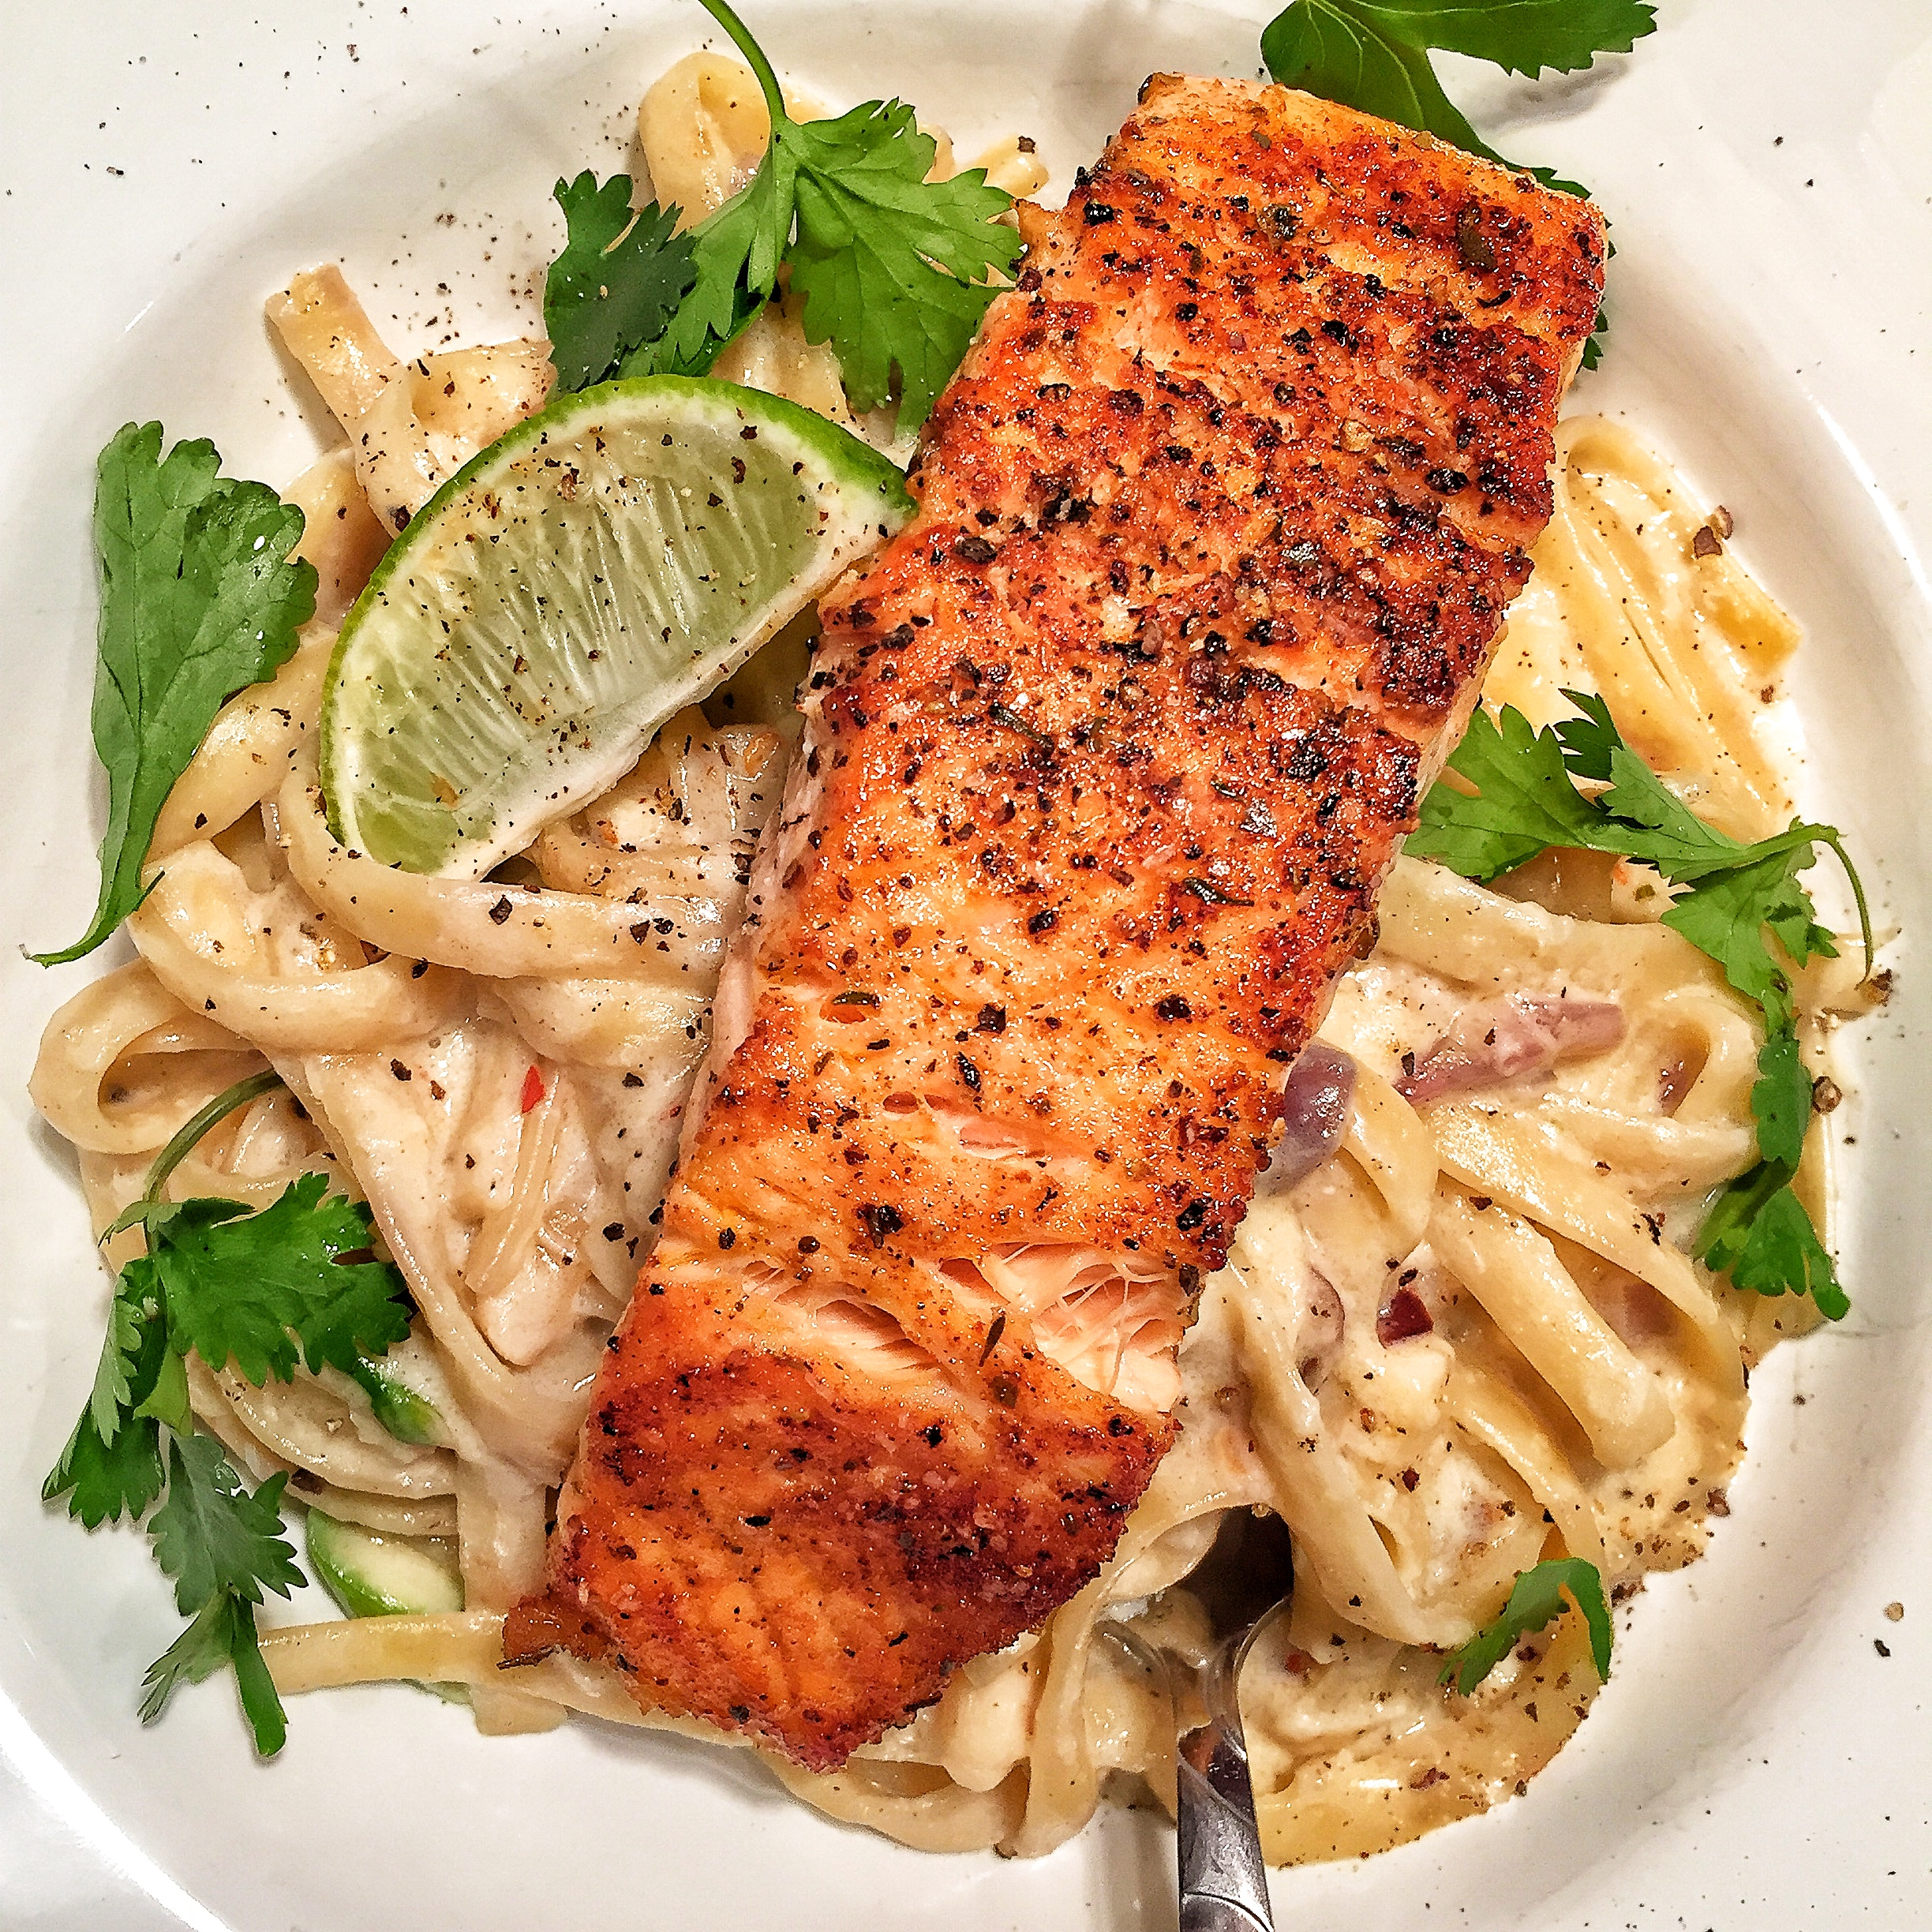 Tequila Lime Salmon & Fettuccine